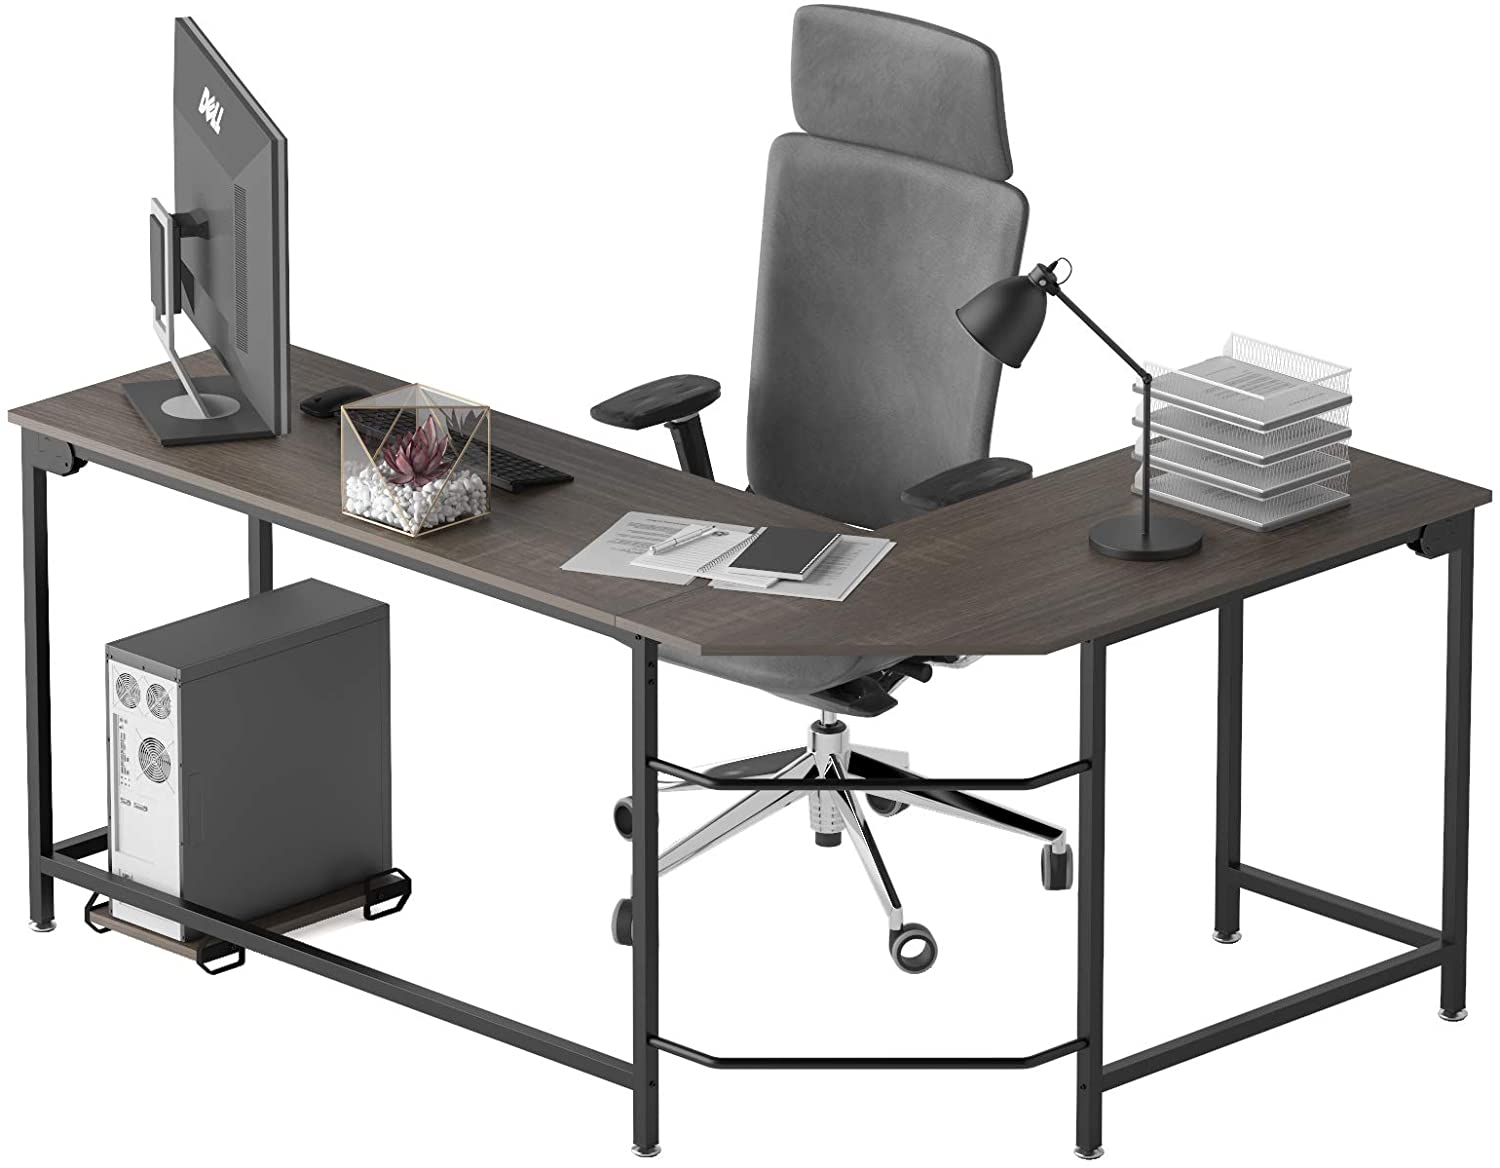 Weehom L Shaped Desk Corner Gaming Computer Desk for Home Office, Easy to Assemble L Desk, Sturdy Writing Table Workstation for Small Spaces